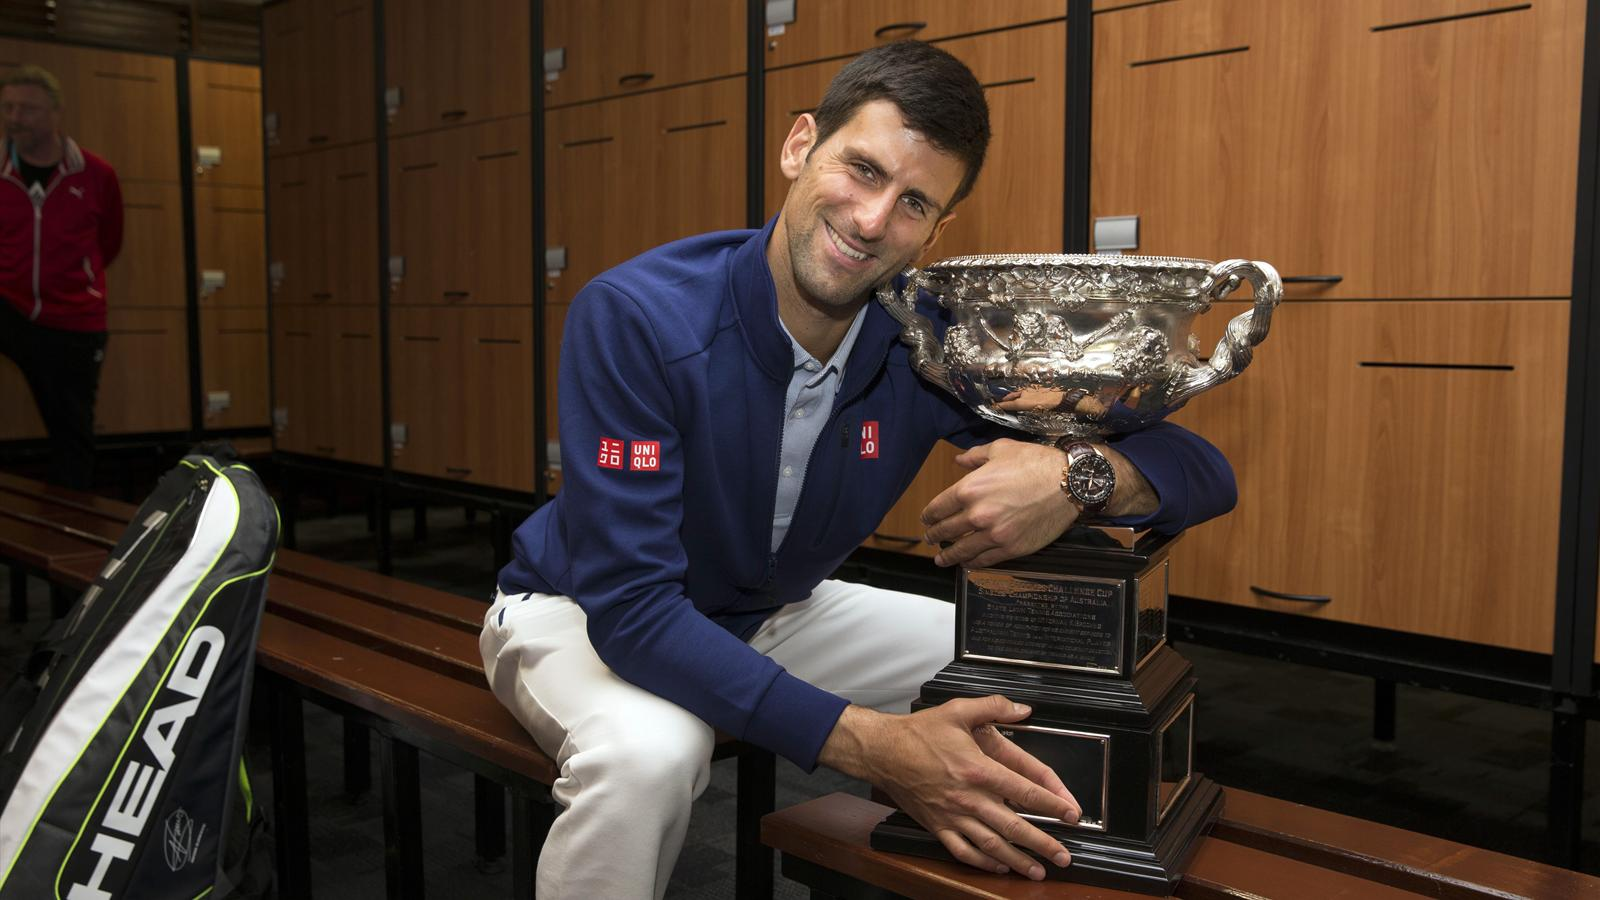 Serbia's Novak Djokovic poses with the men's singles trophy in the locker room after winning his final match against Britain's Andy Murray at the Australian Open